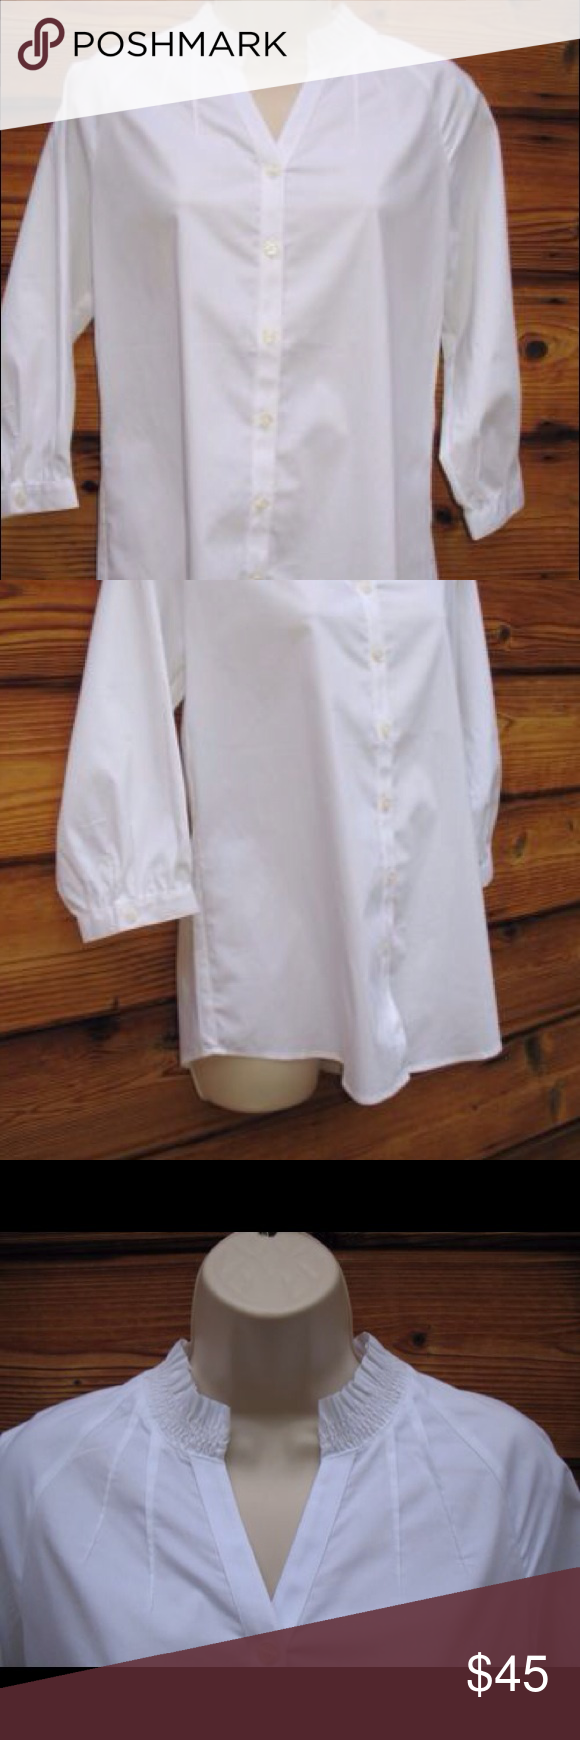 "Chico's Stretch Cotton Blend 3/4 Blouse Chico's Stretch Cotton Blend 3/4 Blousen Sleeve Blouse , New with Tags  Details: Chico's Size: 0/Small Color: White  57% Cotton/30% Polyester/3% Spandex Machine Wash  Measurements: Length: 27"" Bust: 38"" Waist: 36"" Chico's Tops Blouses"